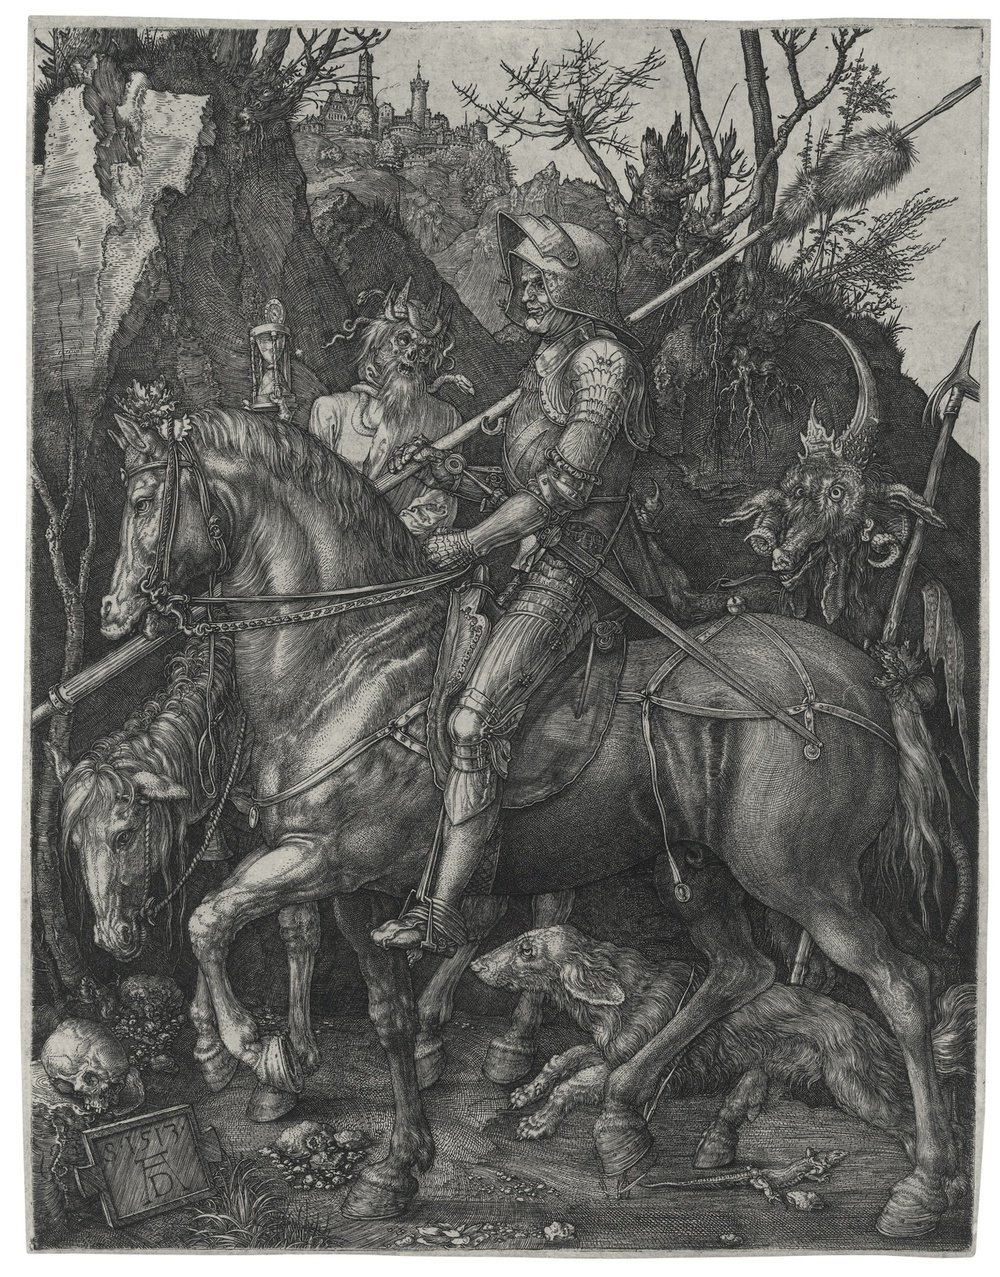 Albrecht Dürer did this print in 1513.   Its still just as epic today… fucking heavy metal dude… One of my favorite artists.